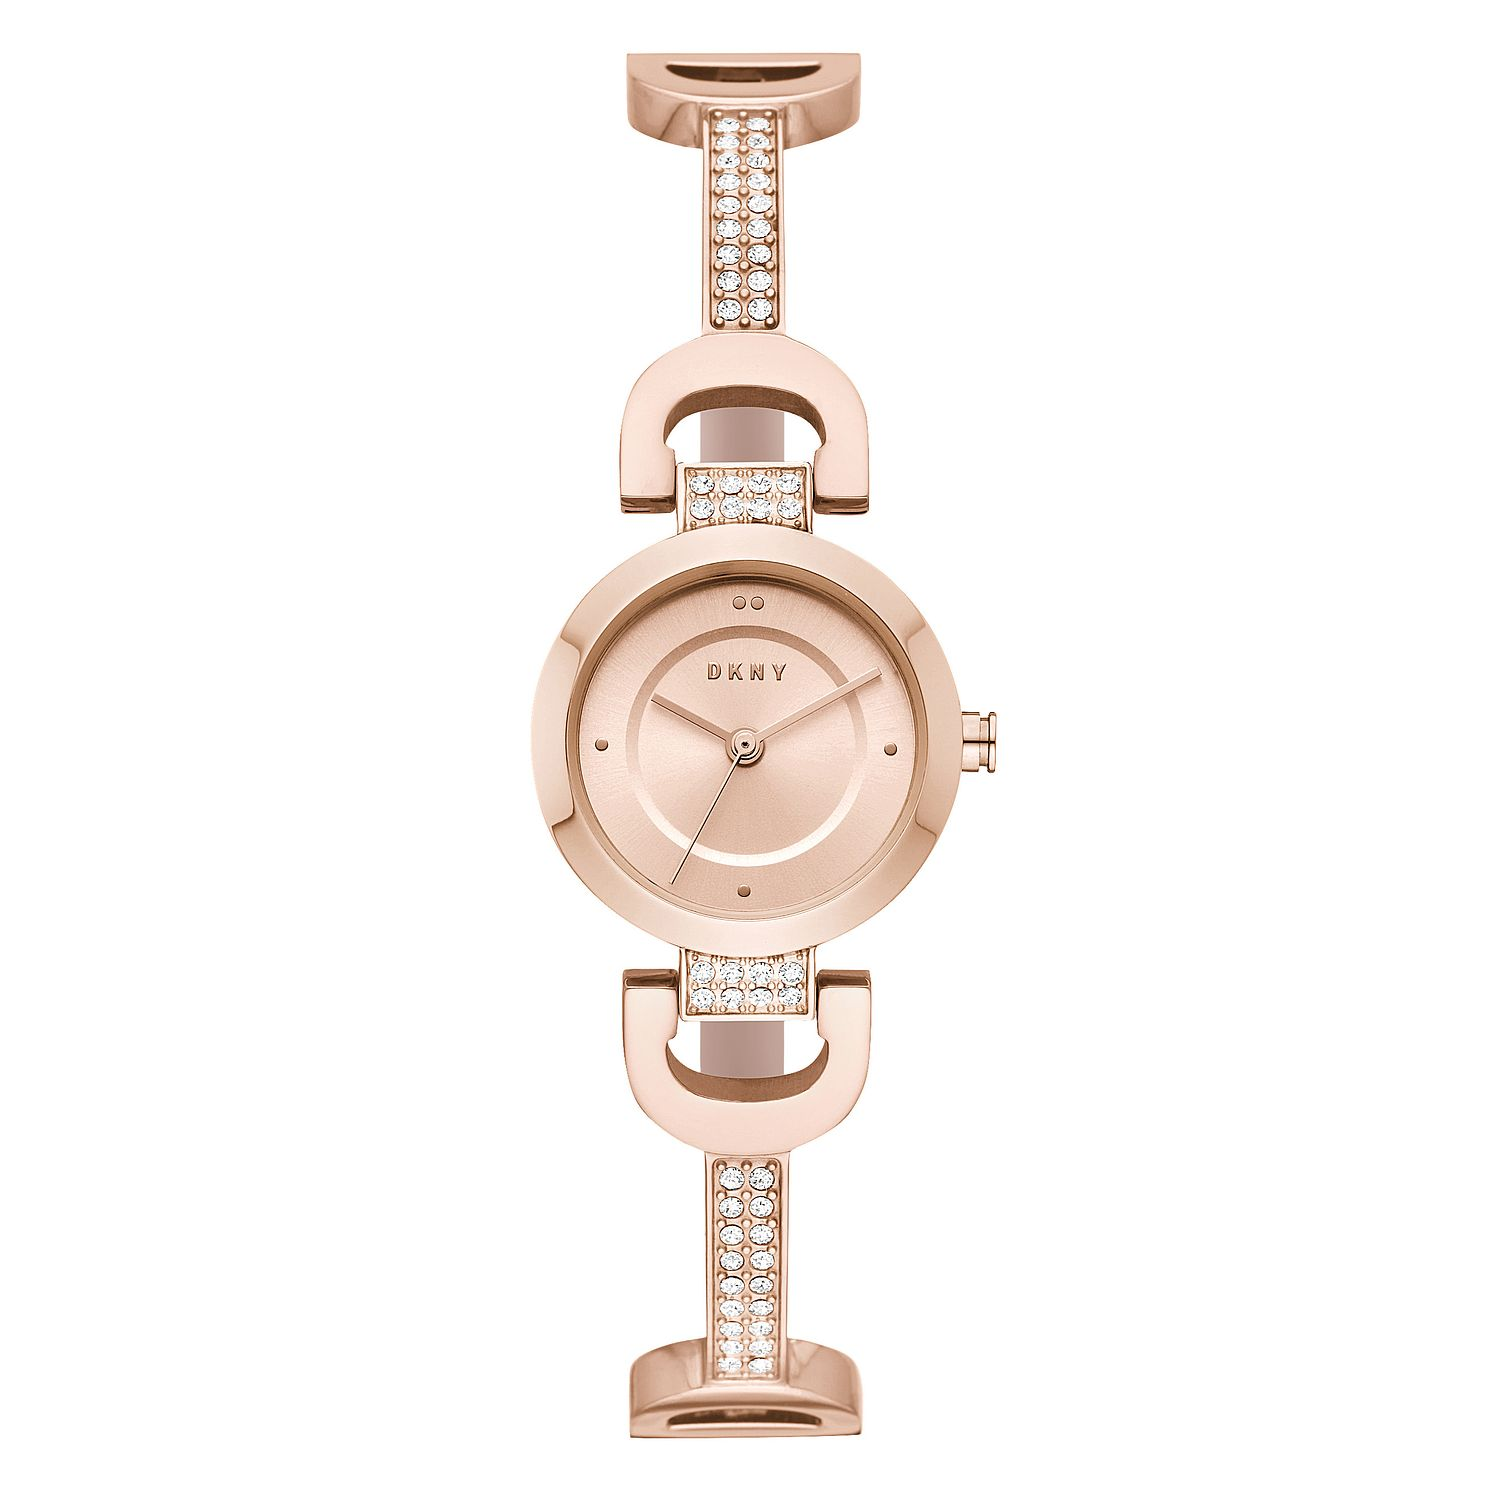 DKNY Ladies' City Link Rose Gold Tone Stainless Steel Watch - Product number 9431233